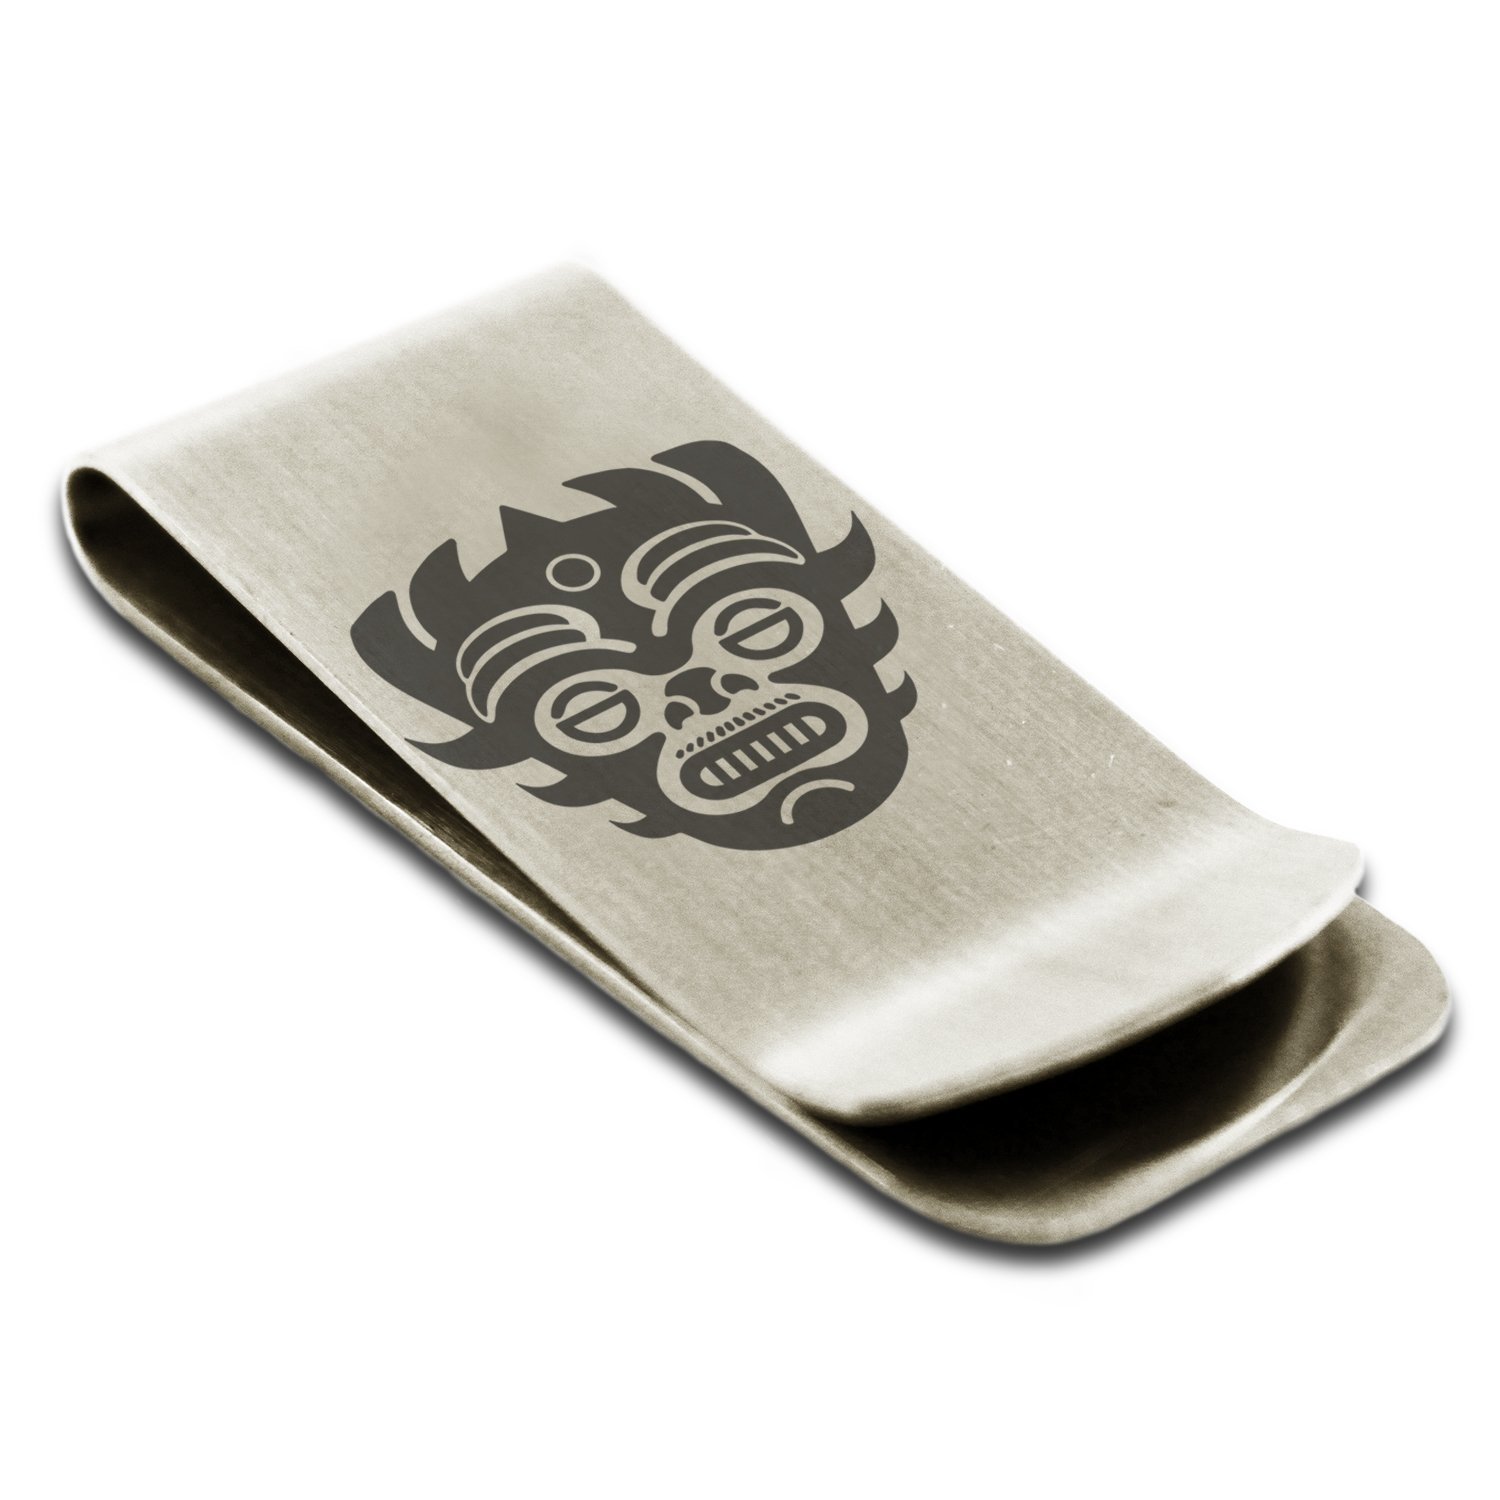 Stainless Steel Aztec Warrior Mask Rune Symbol Engraved Money Clip Credit Card Holder